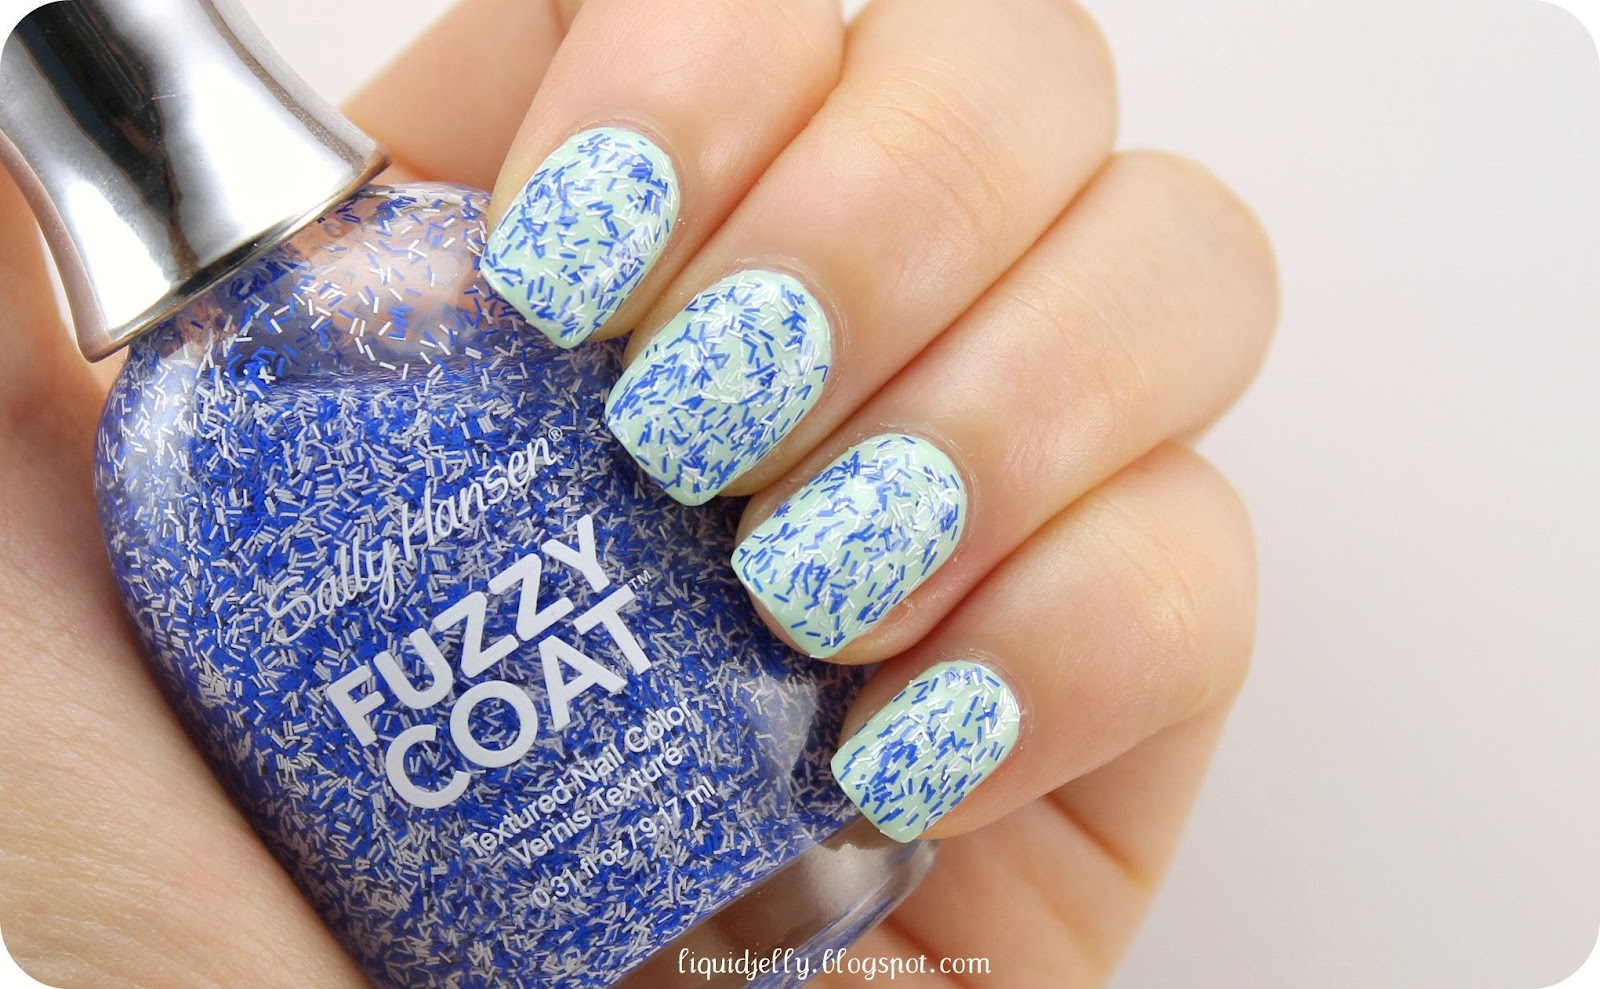 Liquid Jelly: Sally Hansen Fuzzy Coat Review